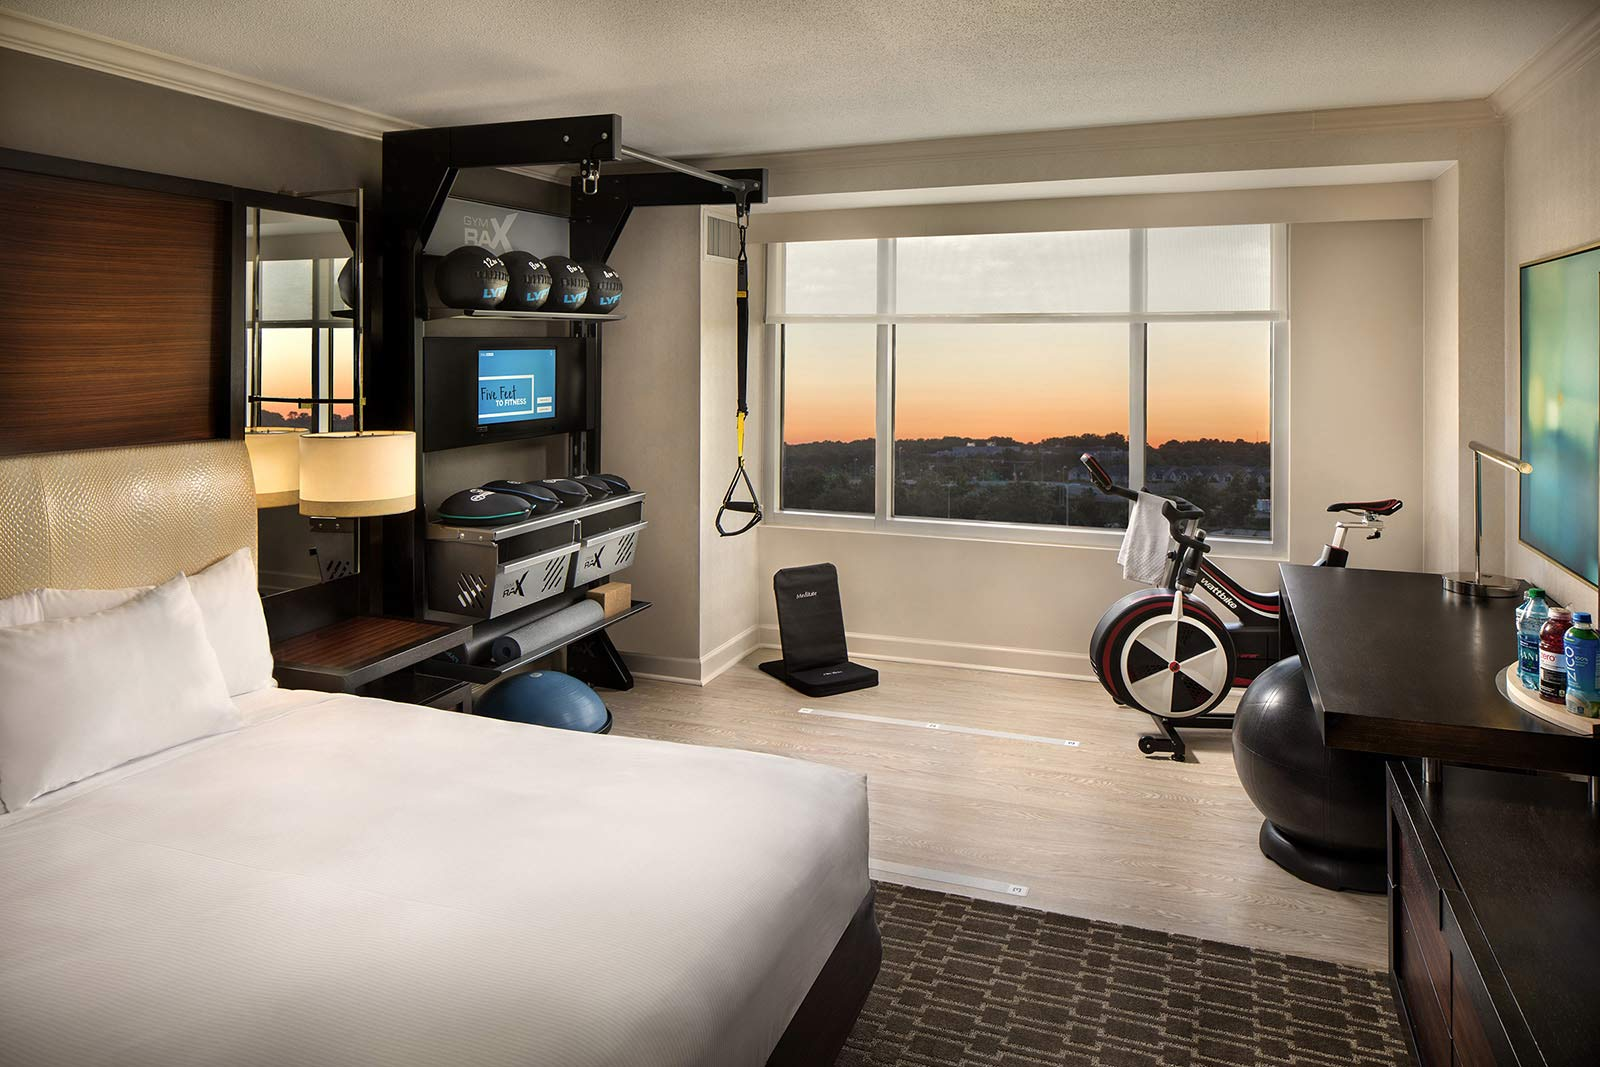 Hilton Hotels | Five Feet to Fitness